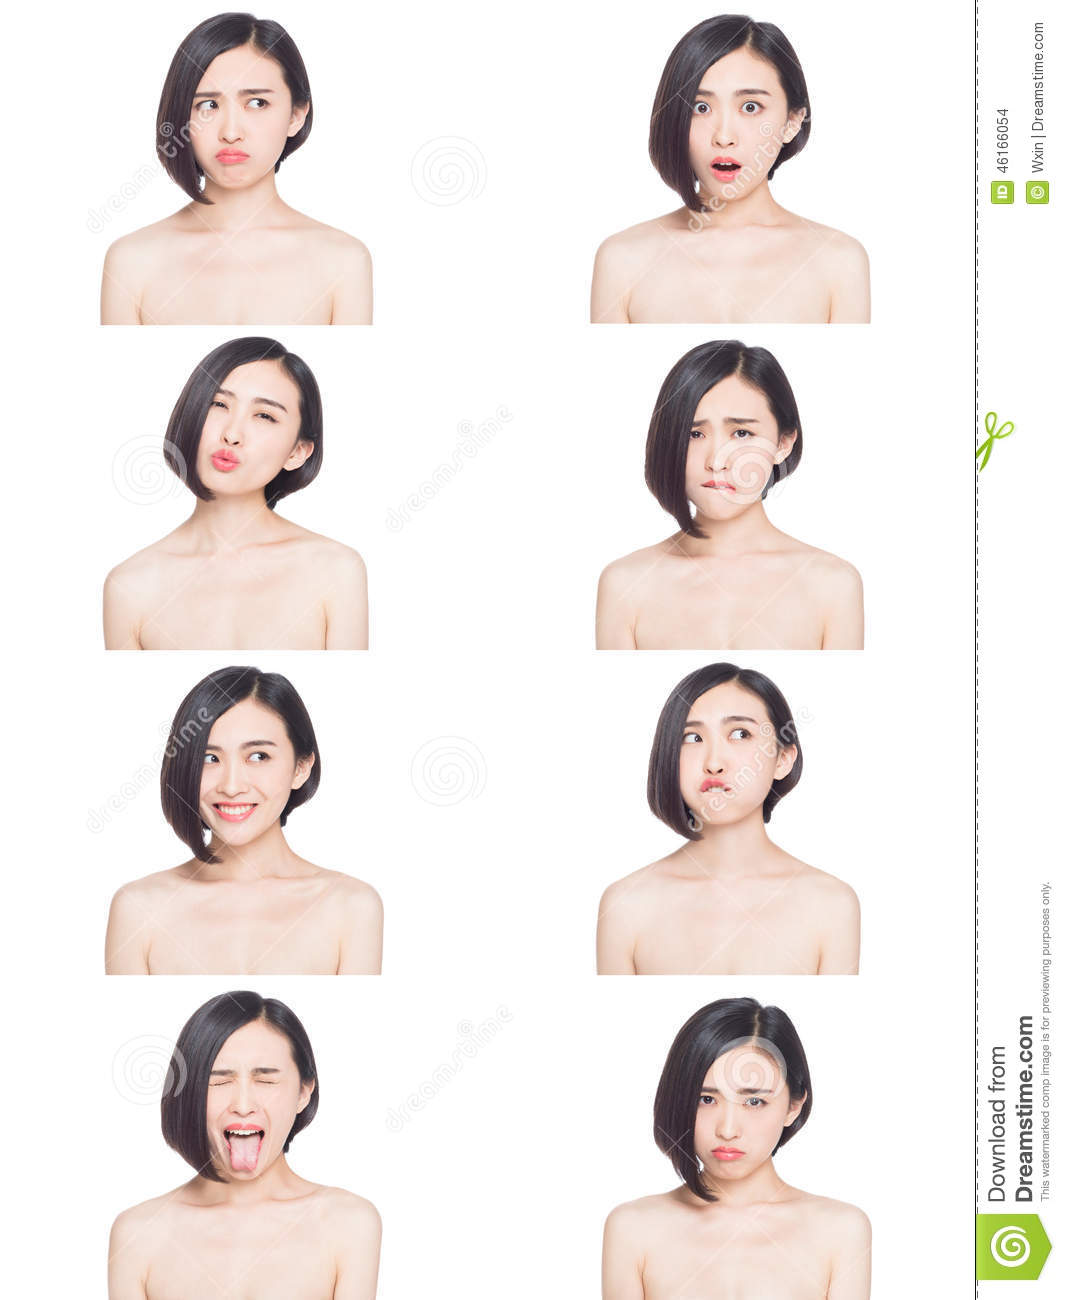 Gender difference in facial expressions properties leaves